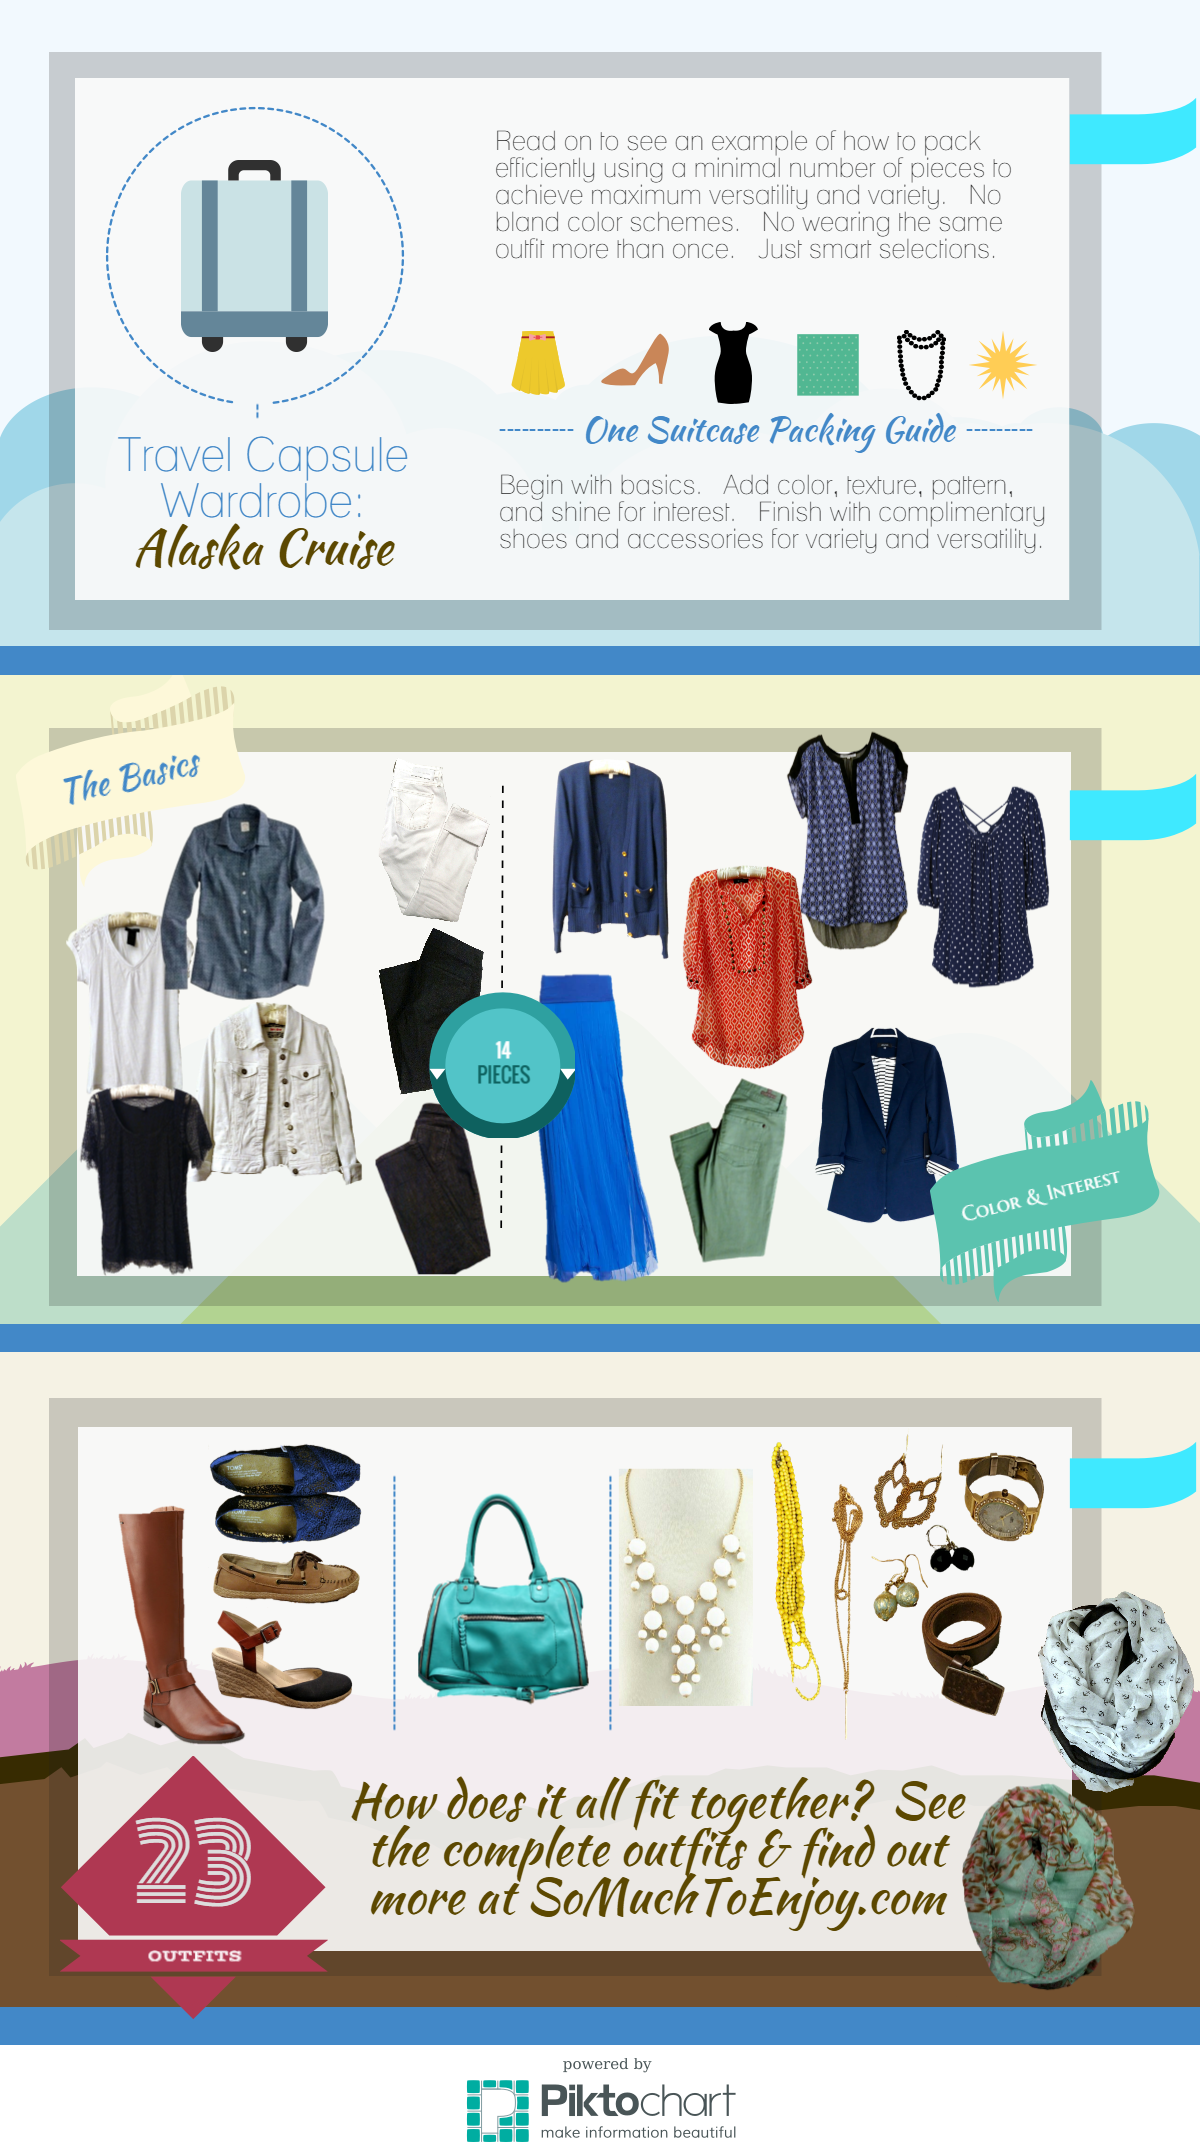 Travel Capsule Wardrobe Alaska Cruise Edition Packing Light For - 9 tips for visiting alaska